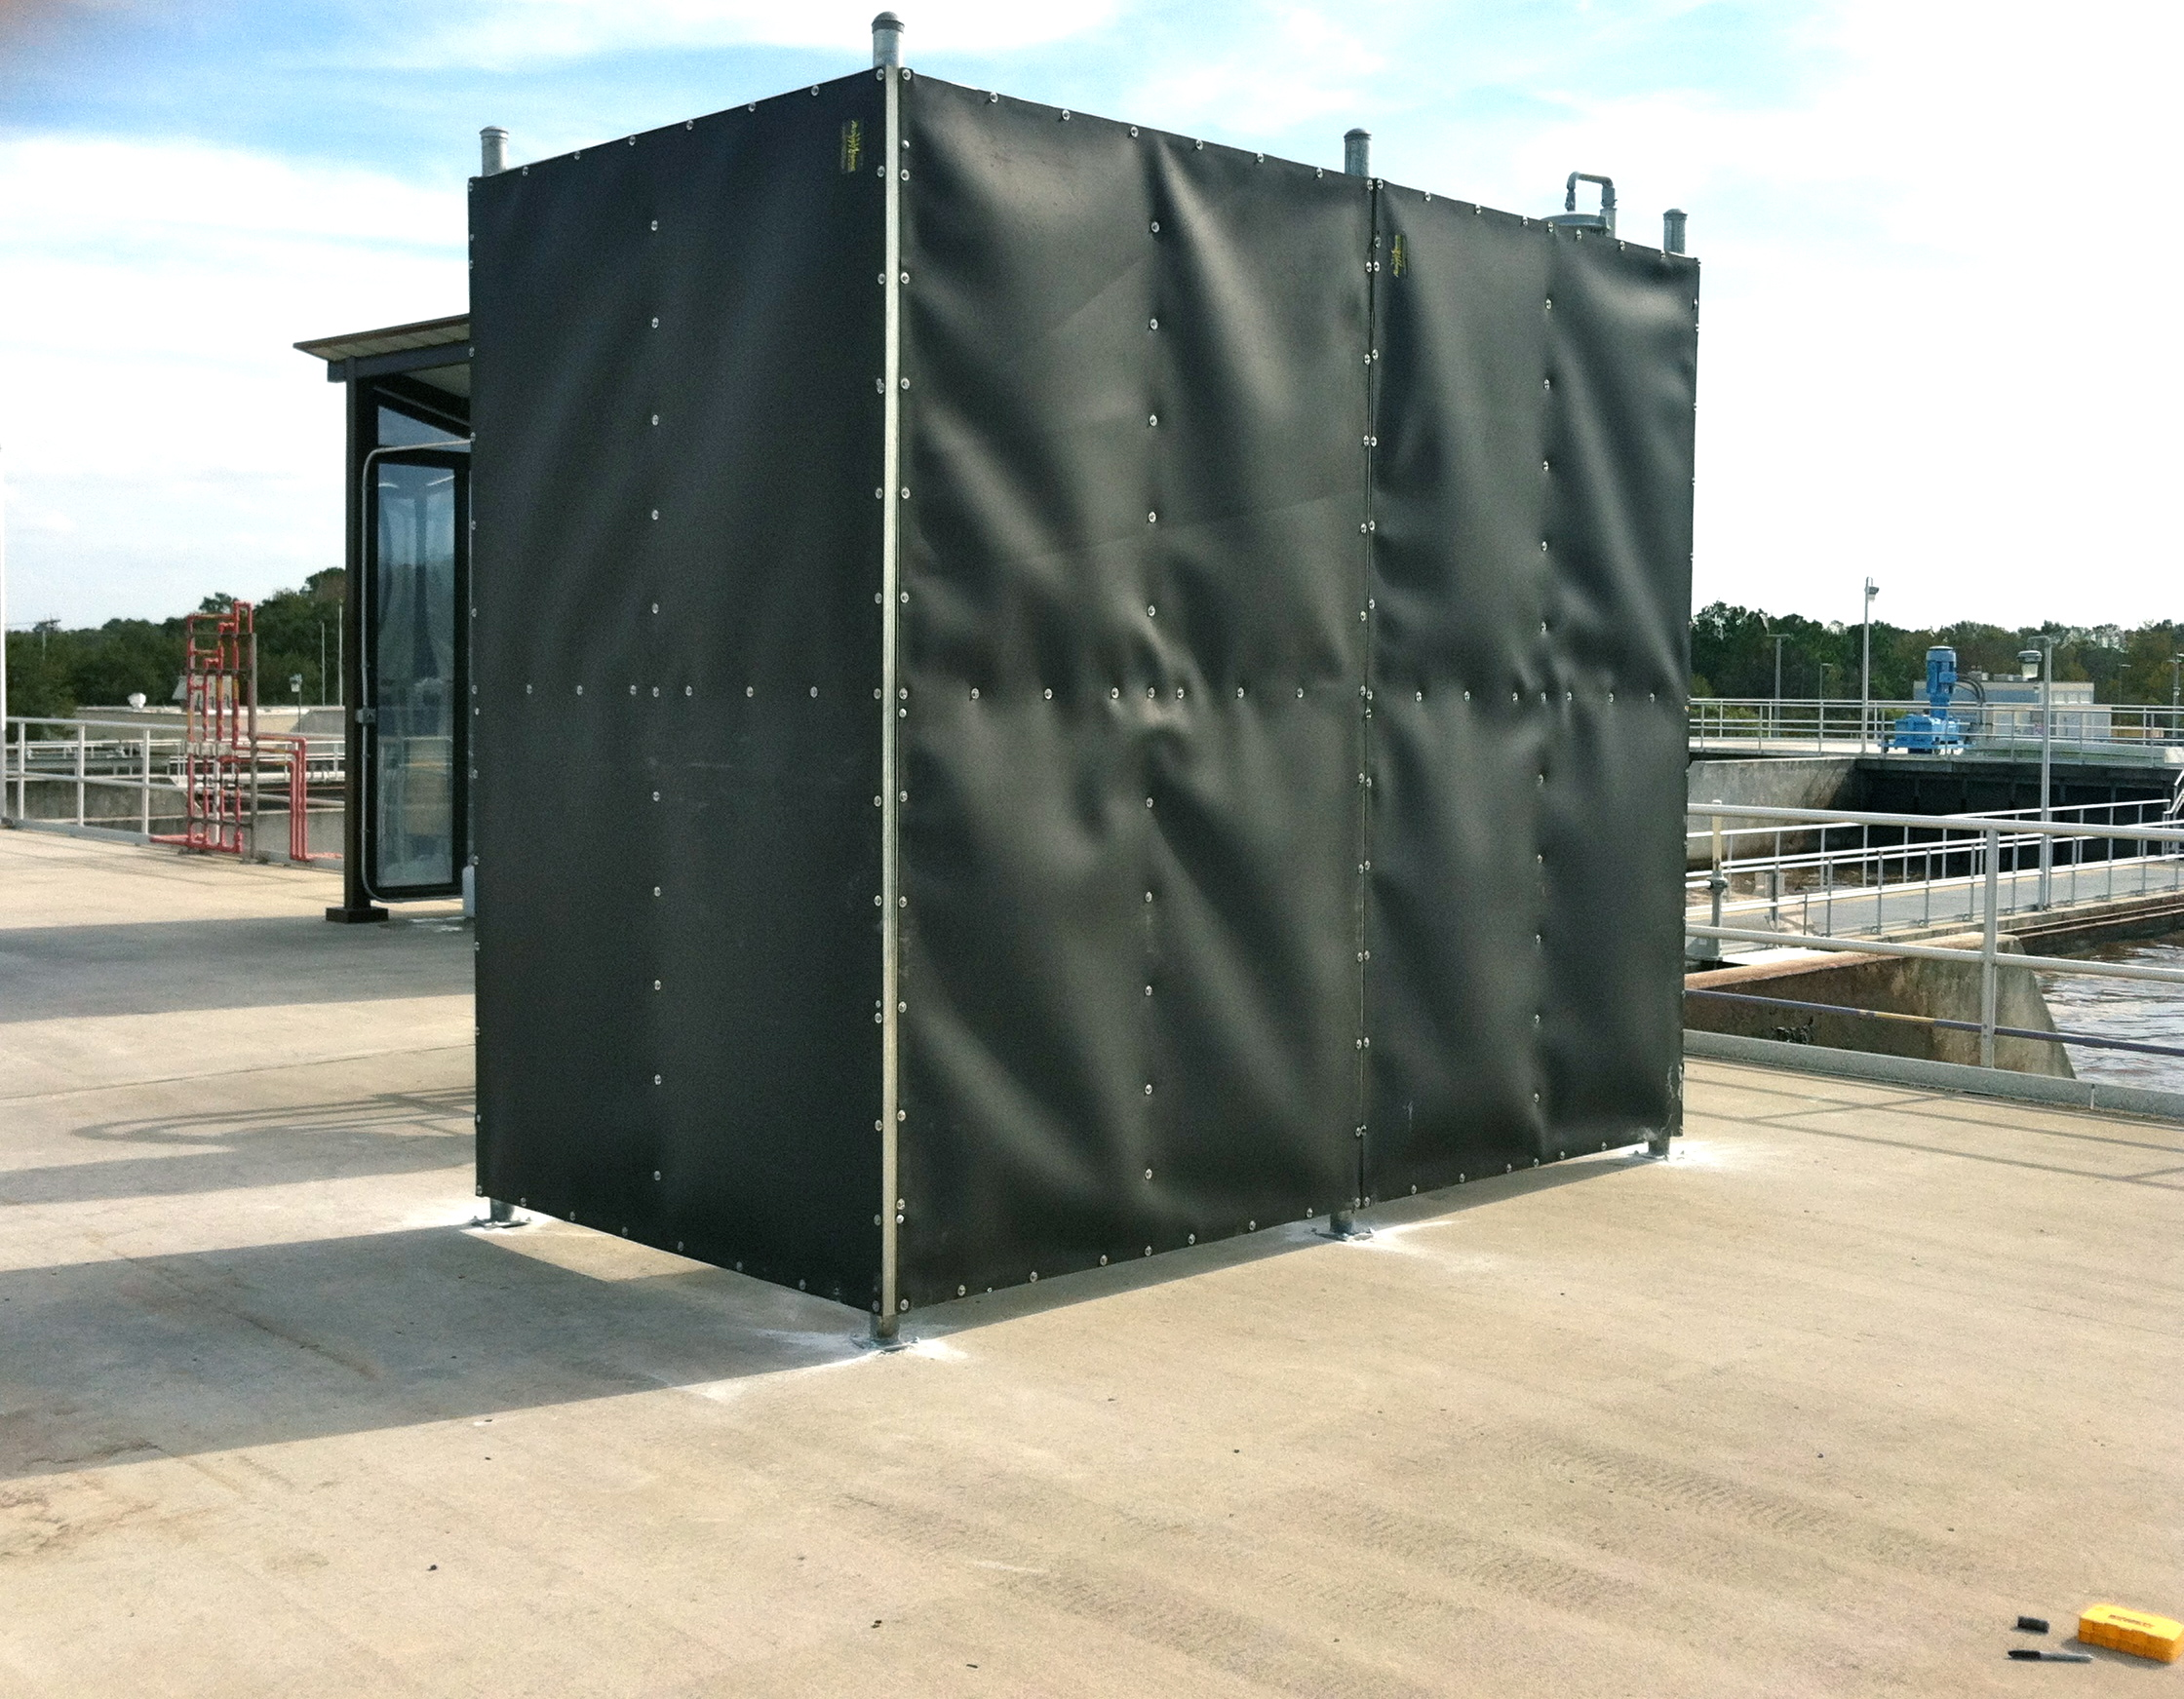 Acoustiblok fence quiets noise for neighbors near - Exterior noise barrier materials ...